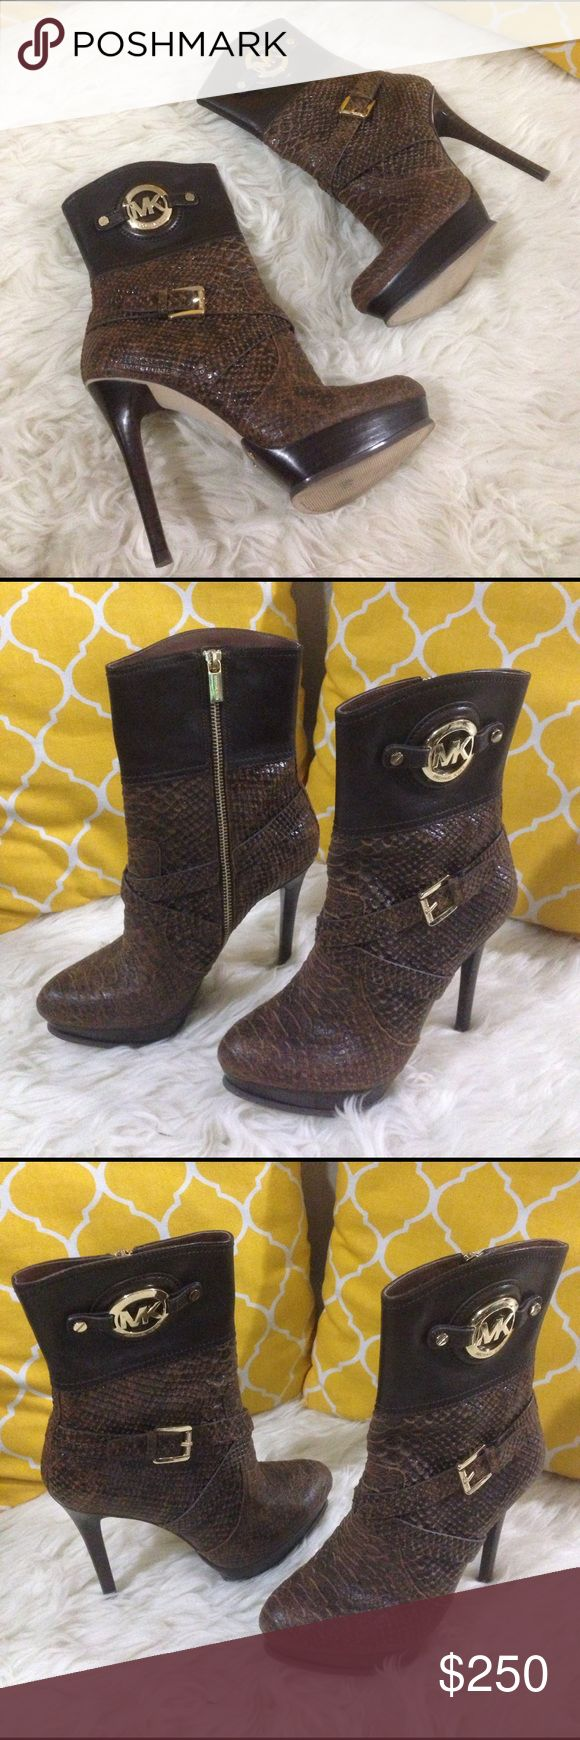 Michael Kors Genuine Leather Boots Size 8 💕Authentic💕Excellent shape. Very nice boots with heels.Don't be shy to make an offer💕 Michael Kors Shoes Ankle Boots & Booties